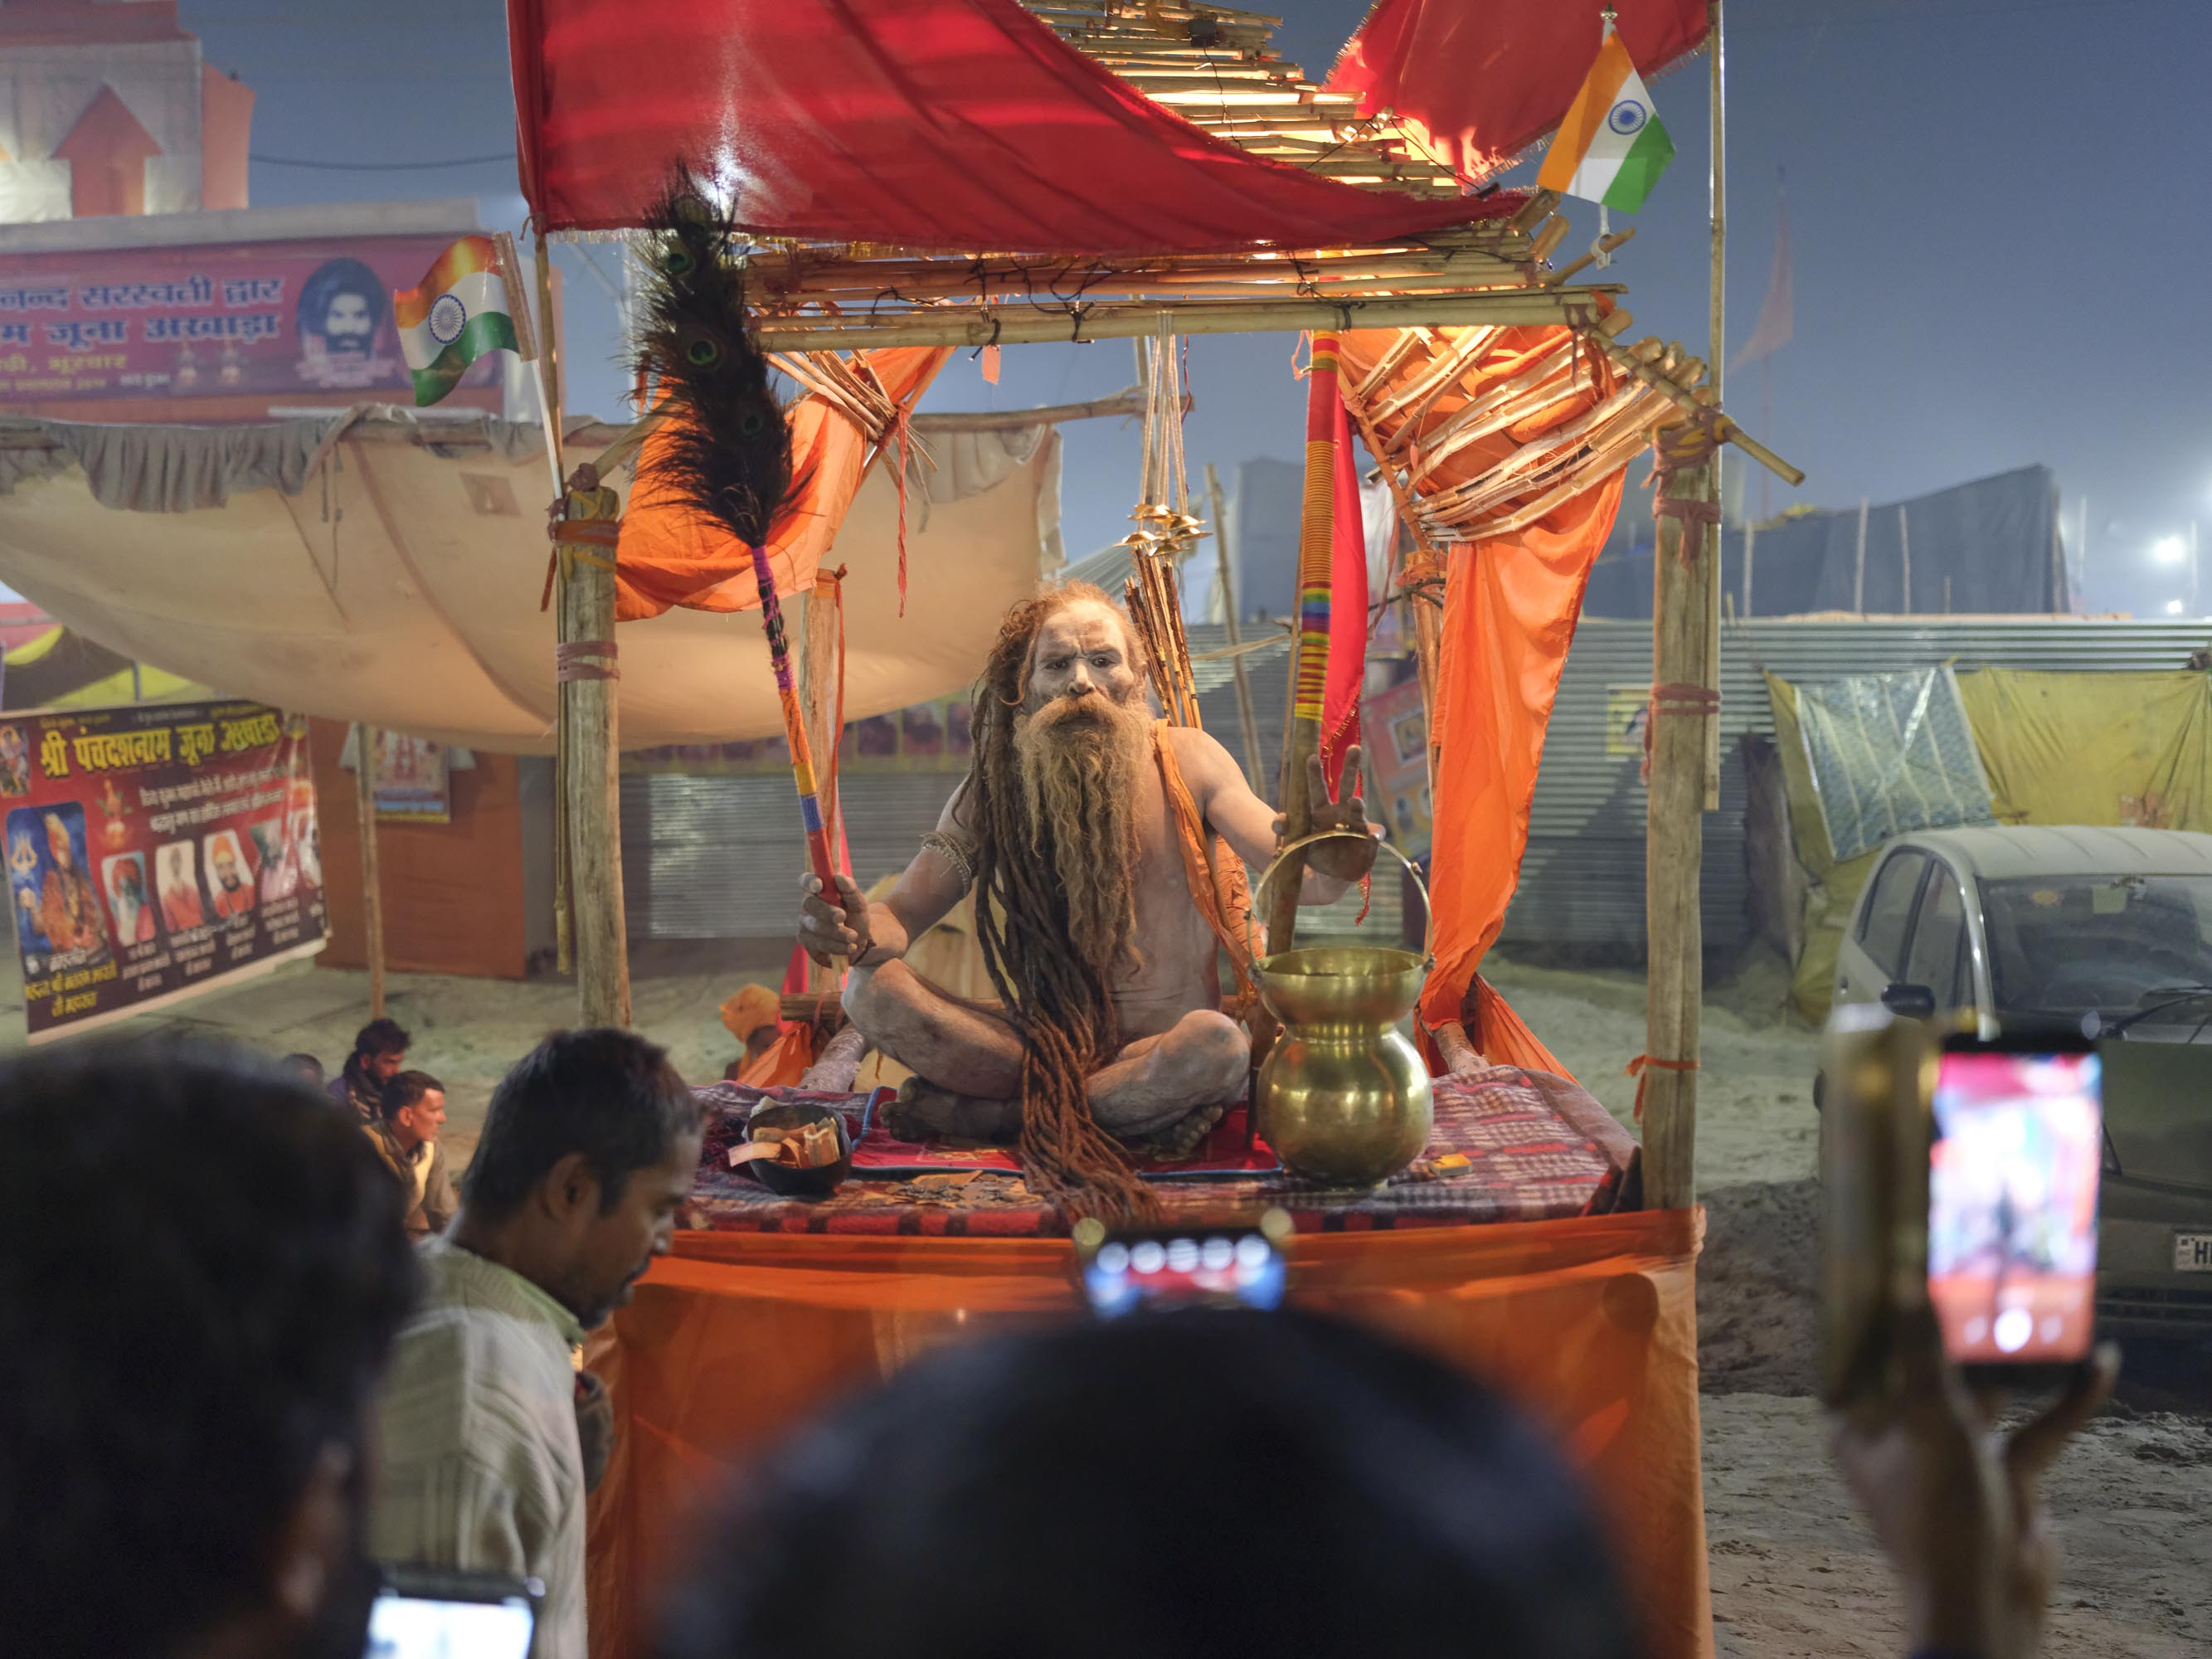 baba show night naked pilgrims Kumbh mela 2019 India Allahabad Prayagraj Ardh hindu religious Festival event rivers photographer jose jeuland photography